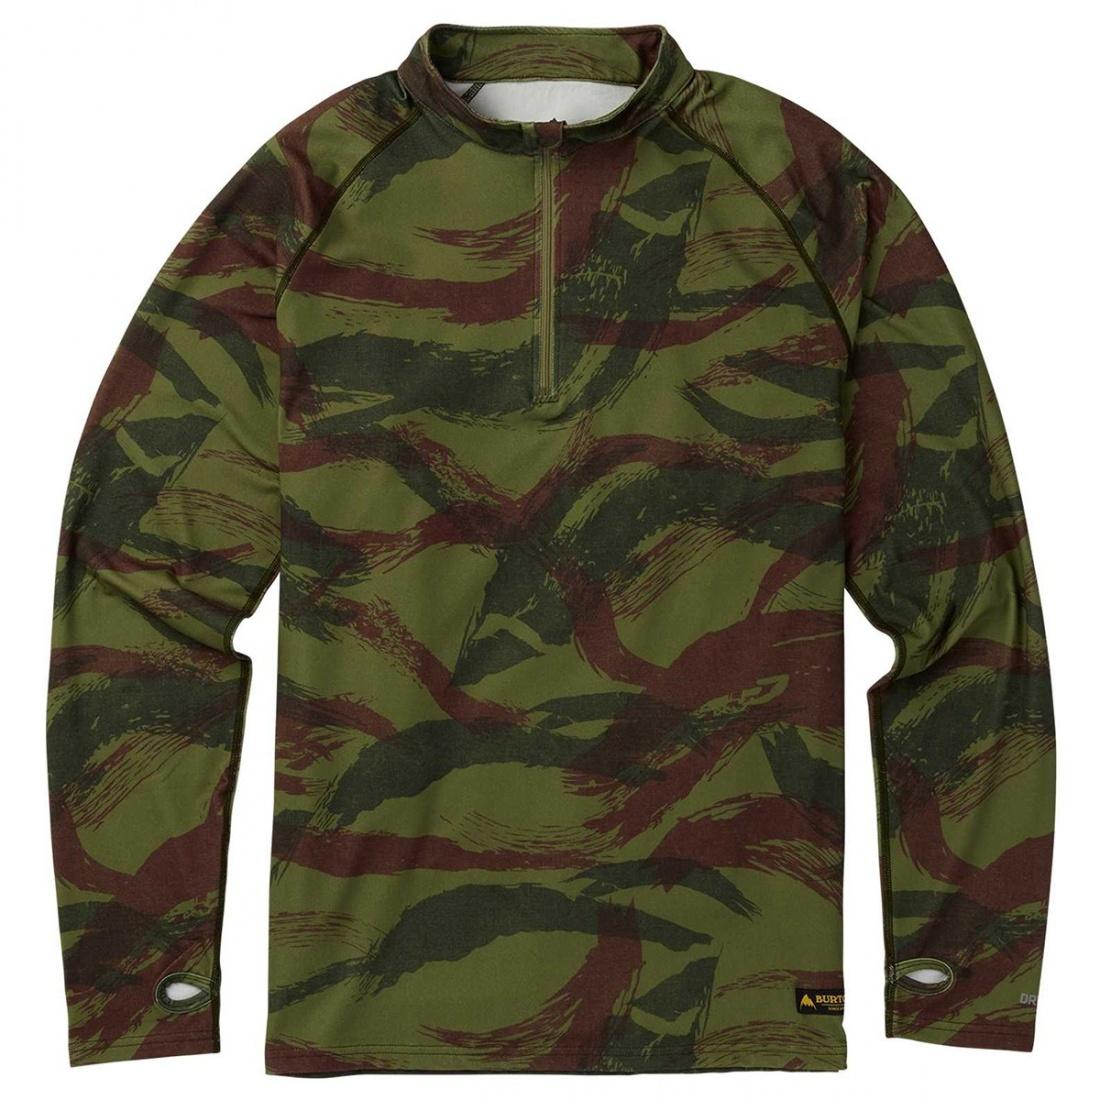 Burton Термобелье Burton Expedition 1/4 Zip Base Layer BRUSH CAMO, , , FW18 L burton термоноски burton party sock wings fw18 l